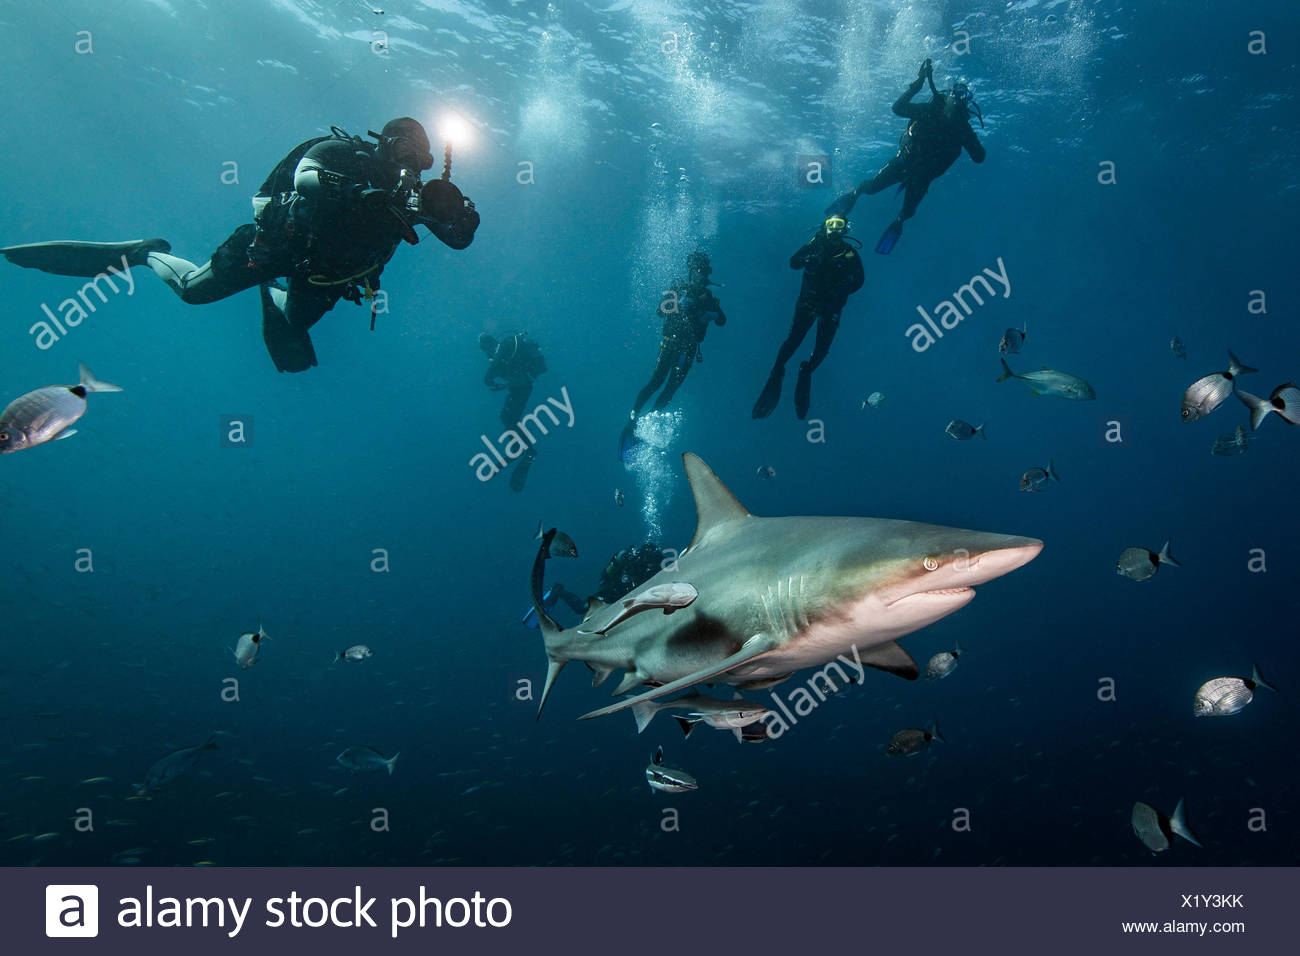 Scuba divers' encounter with large Oceanic Blacktip Shark (Carcharhinus Limbatus), Aliwal Shoal, South Africa - Stock Image